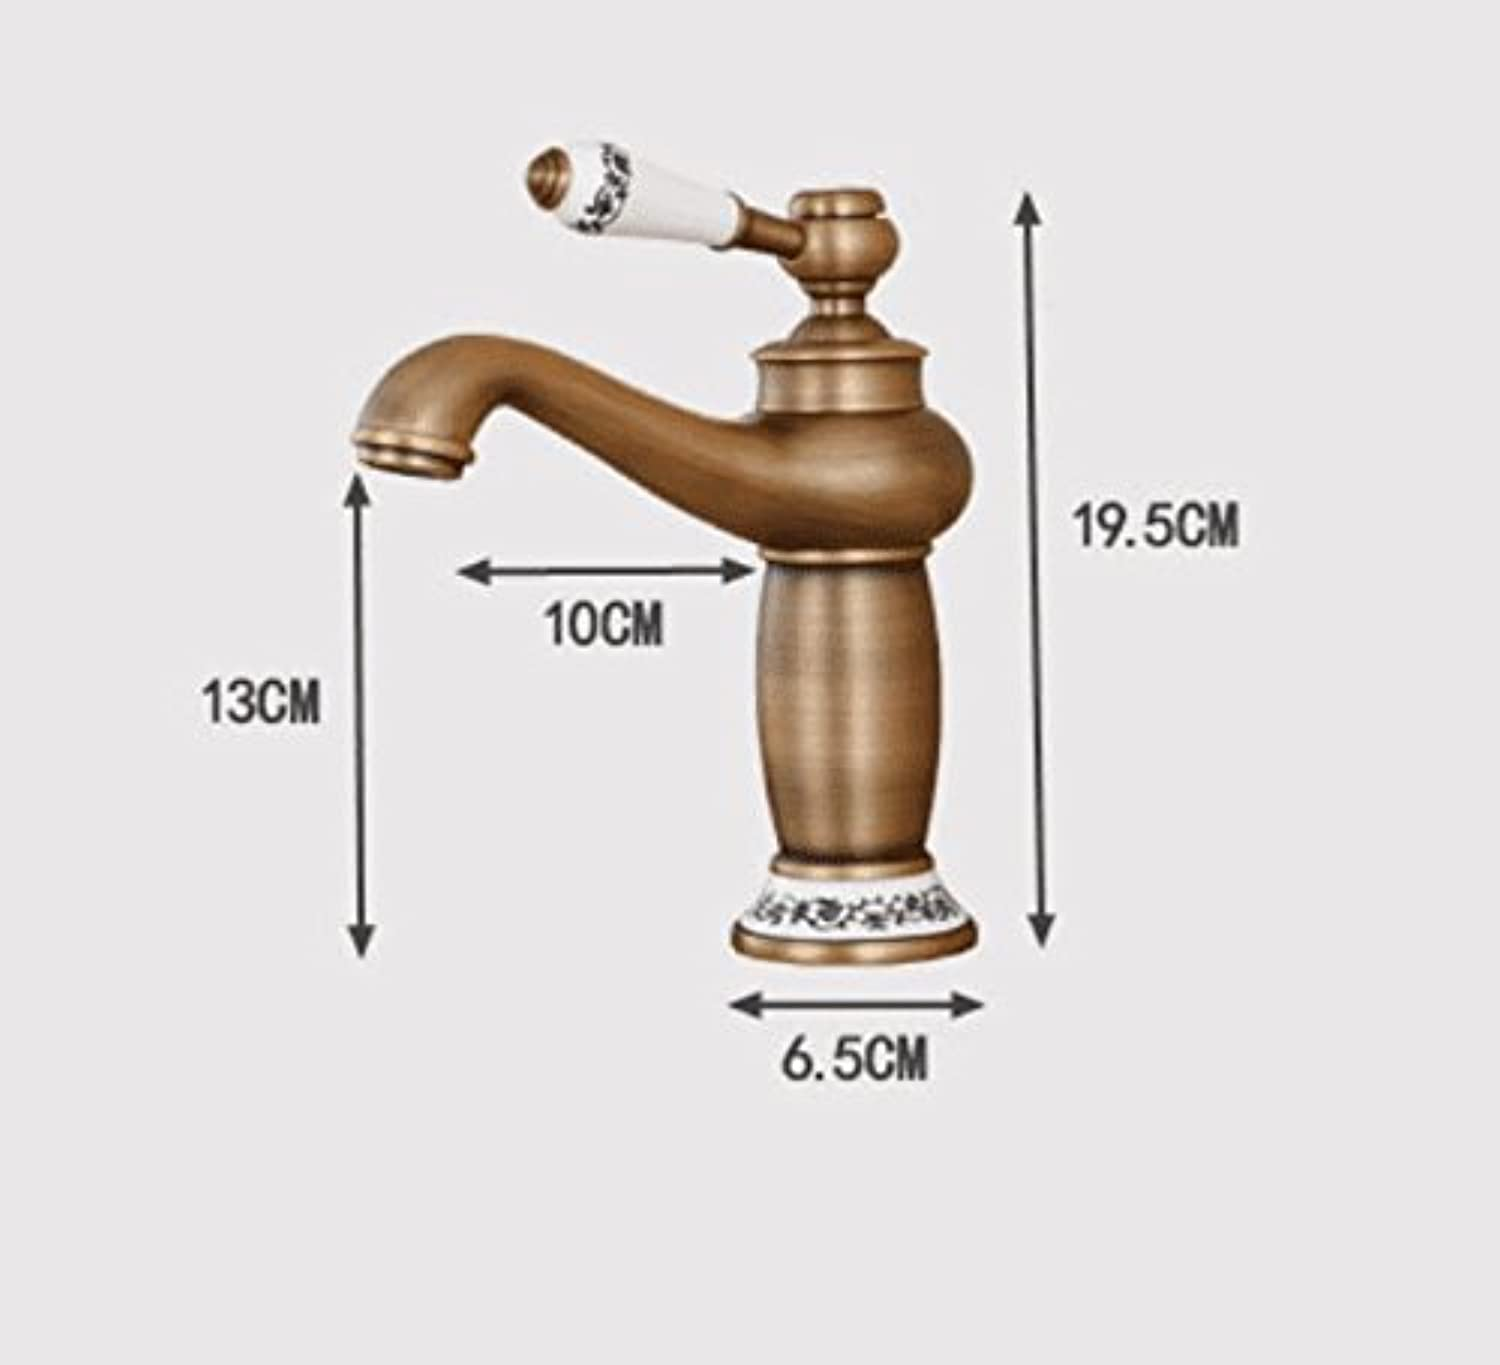 Mildemr European Style All Copper Antique Platform Basin Cold Hot Faucet Wash Basin Single Single Hole American bluee and White Water Faucet,golden Money